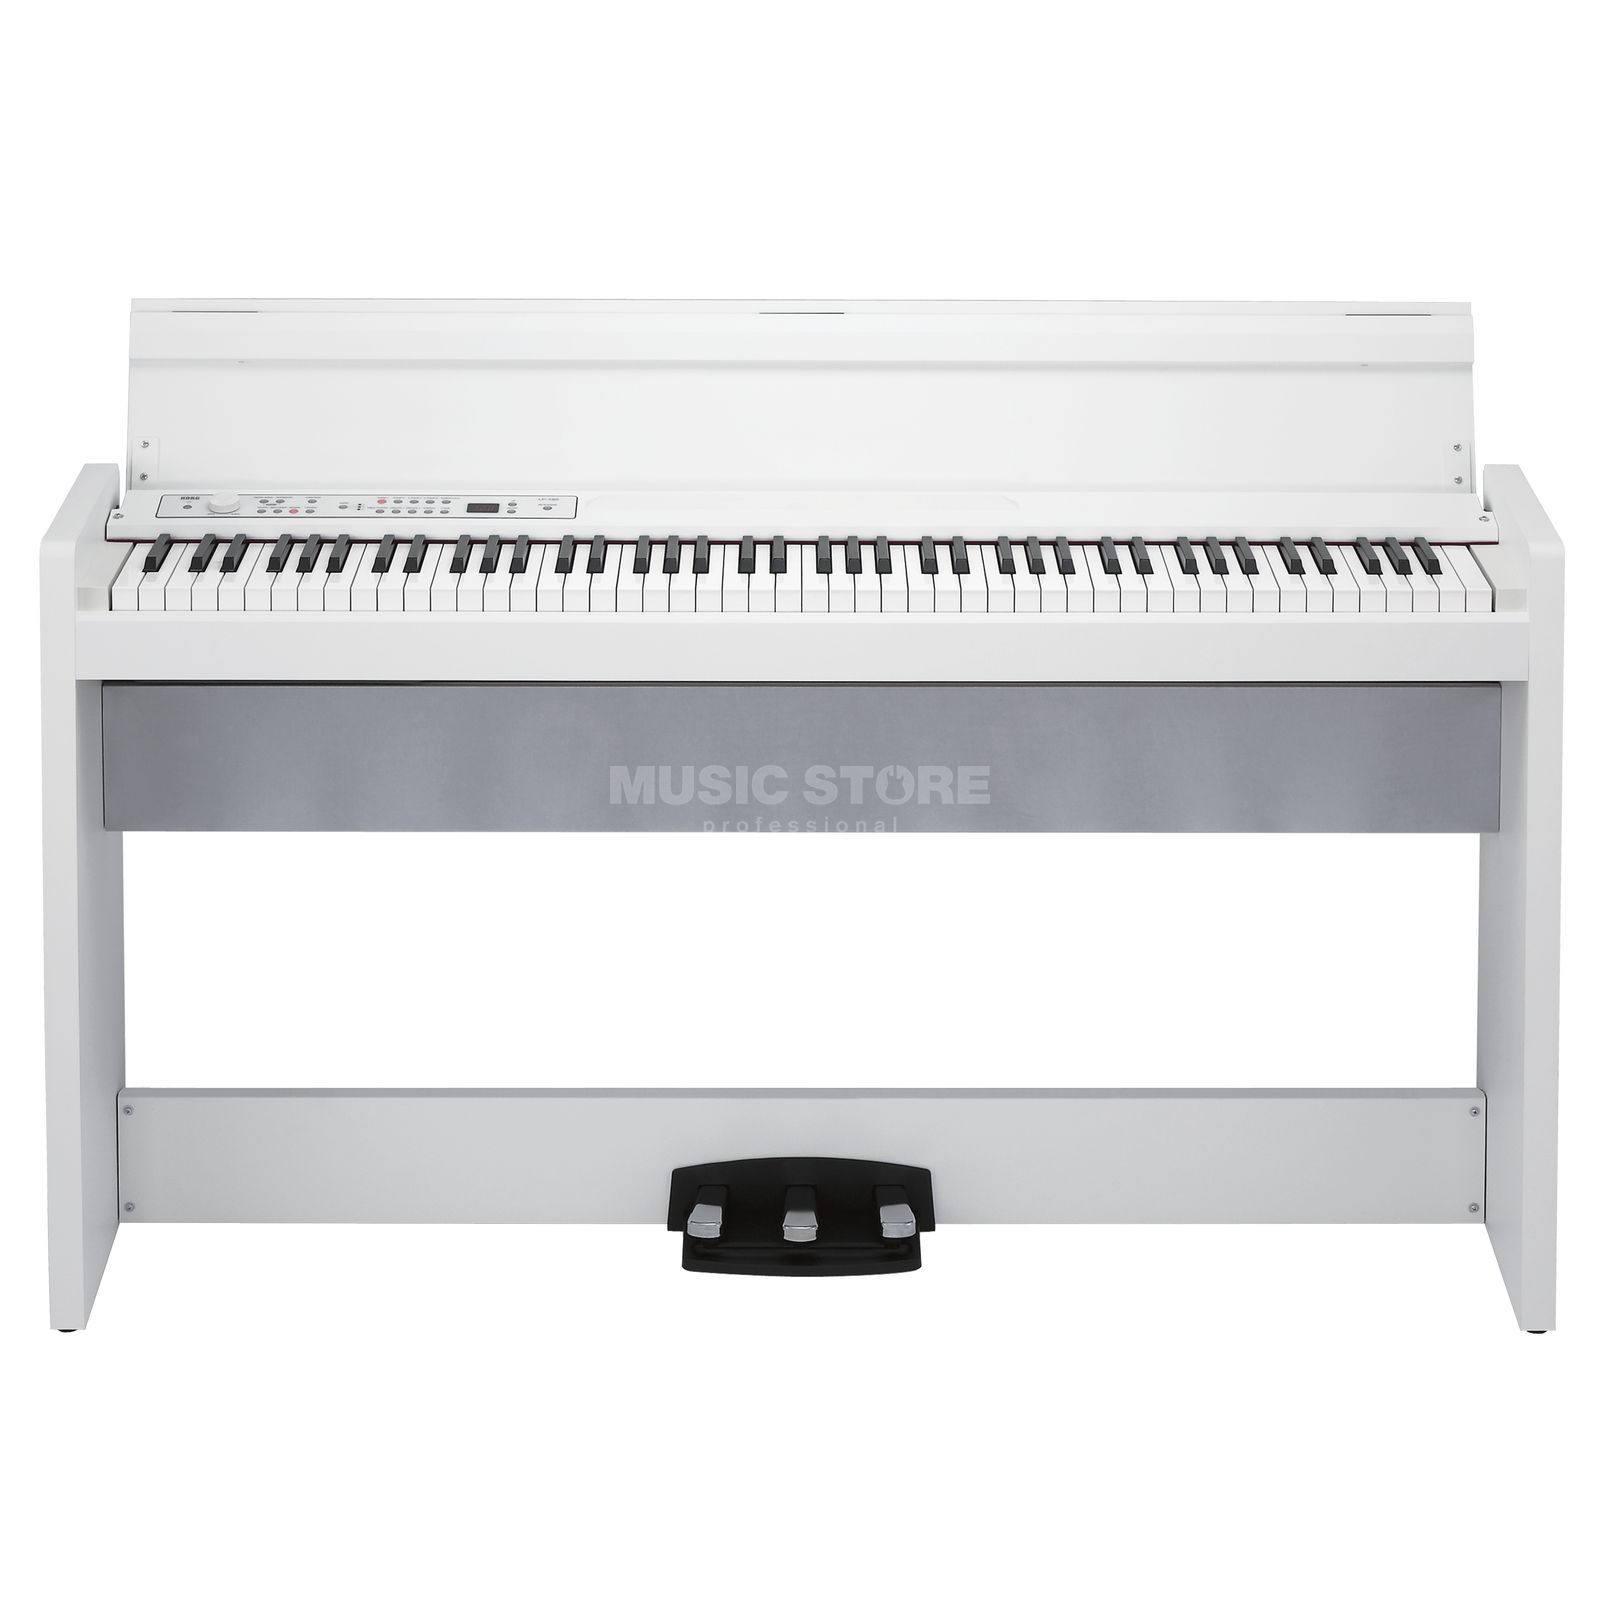 Korg LP-380 WH Digital Piano, White Produktbillede